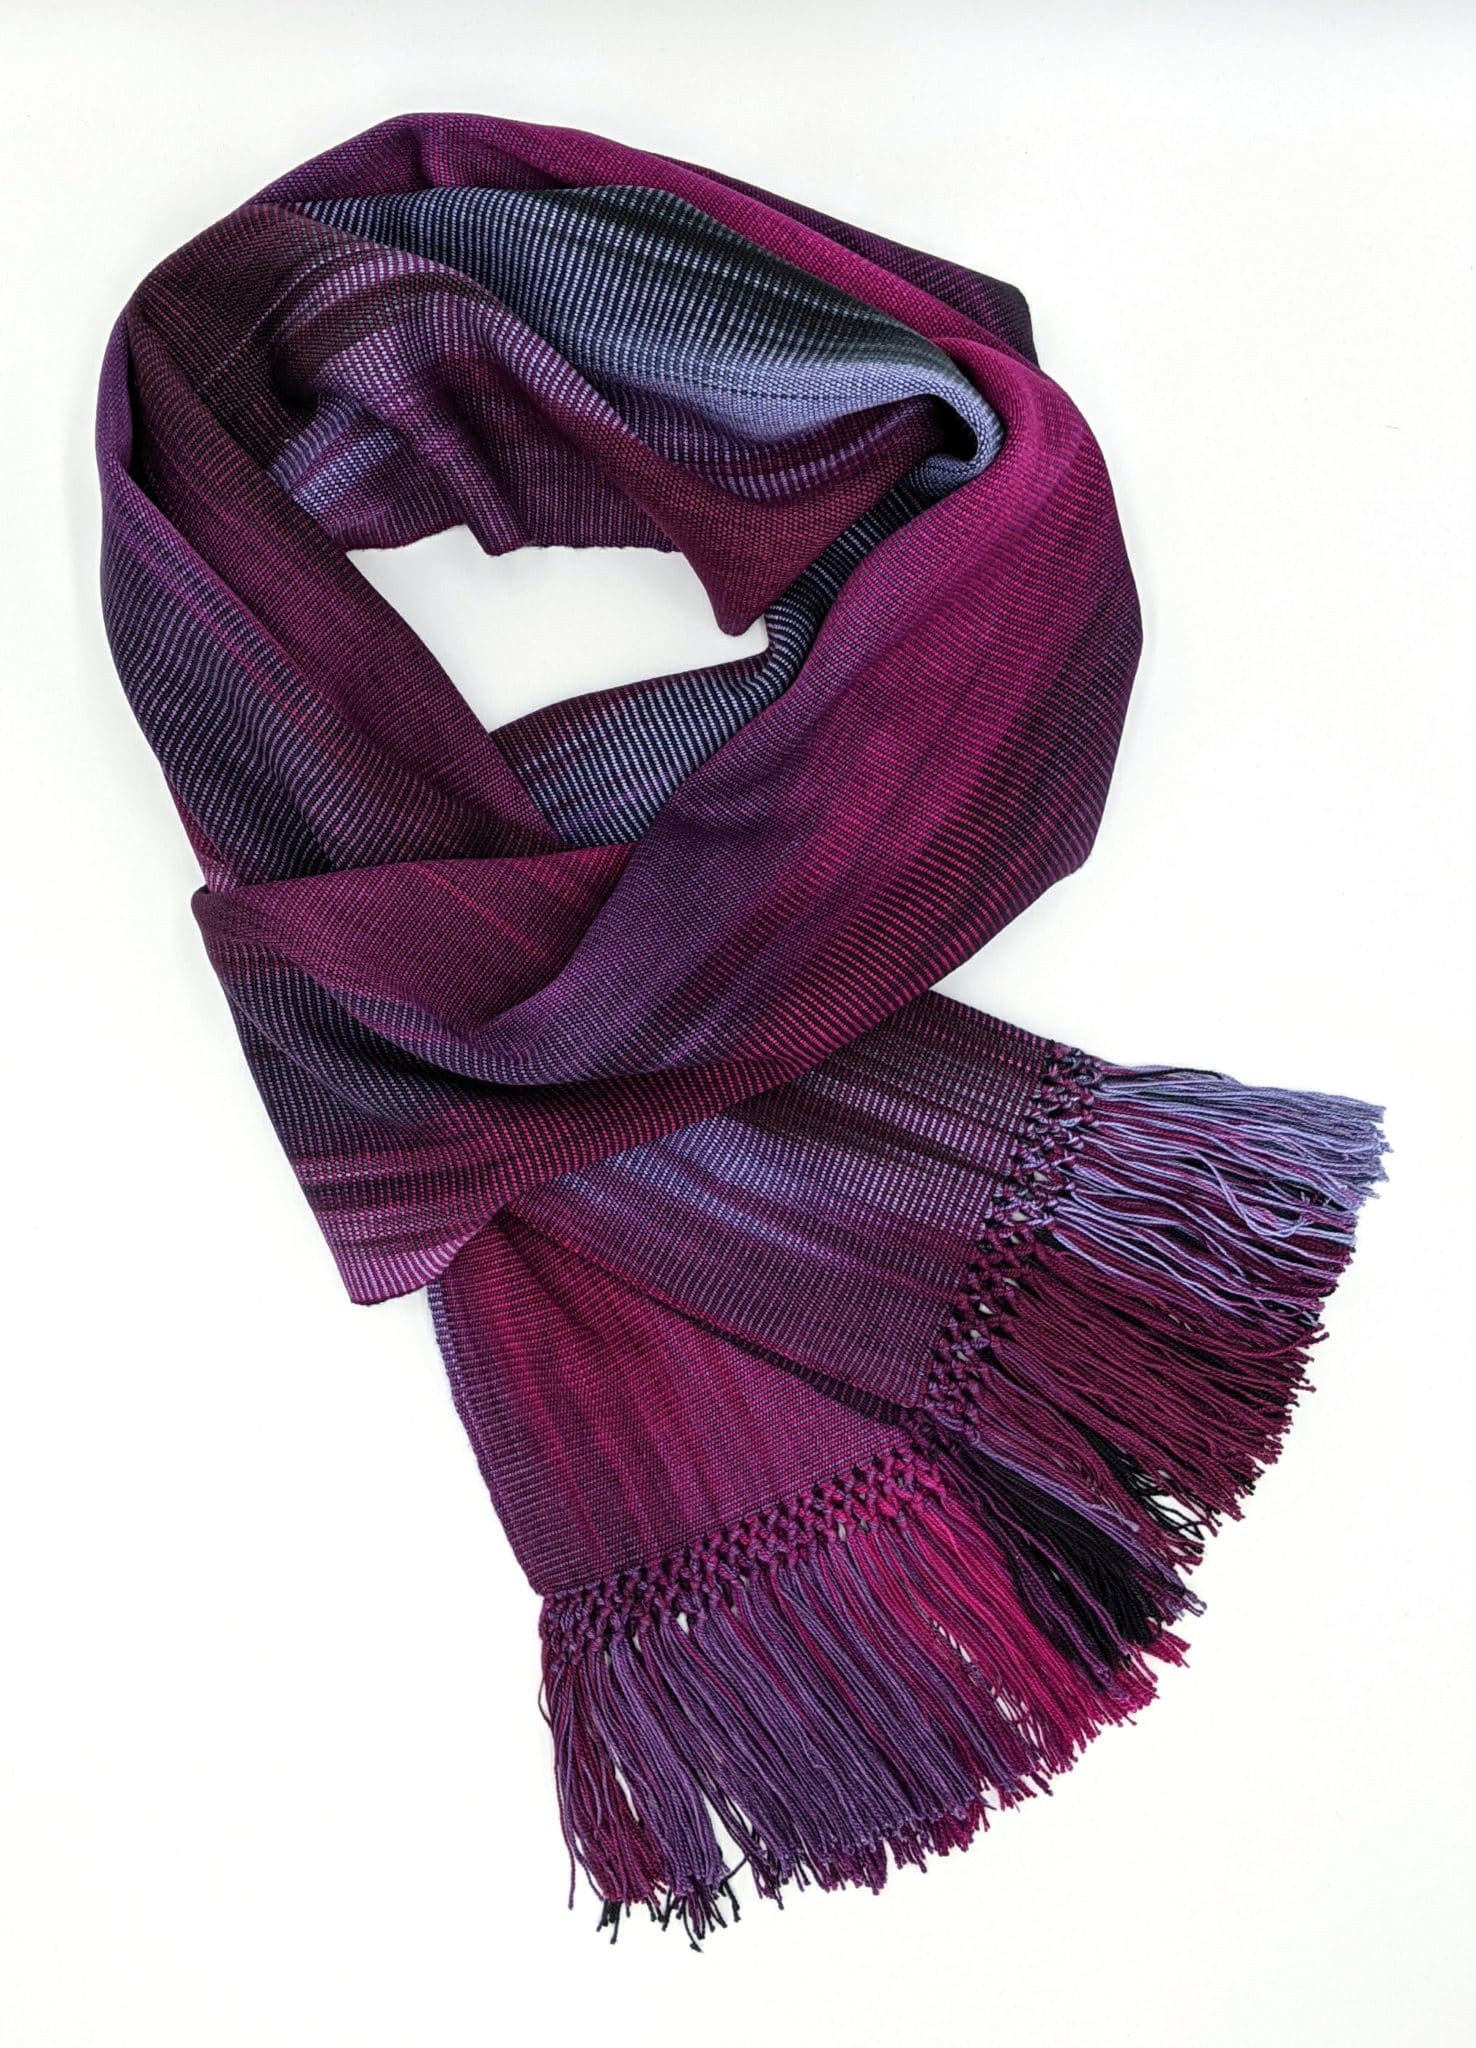 Magenta, Light Violet and Black Lightweight Bamboo Handwoven Scarf 8 x 68